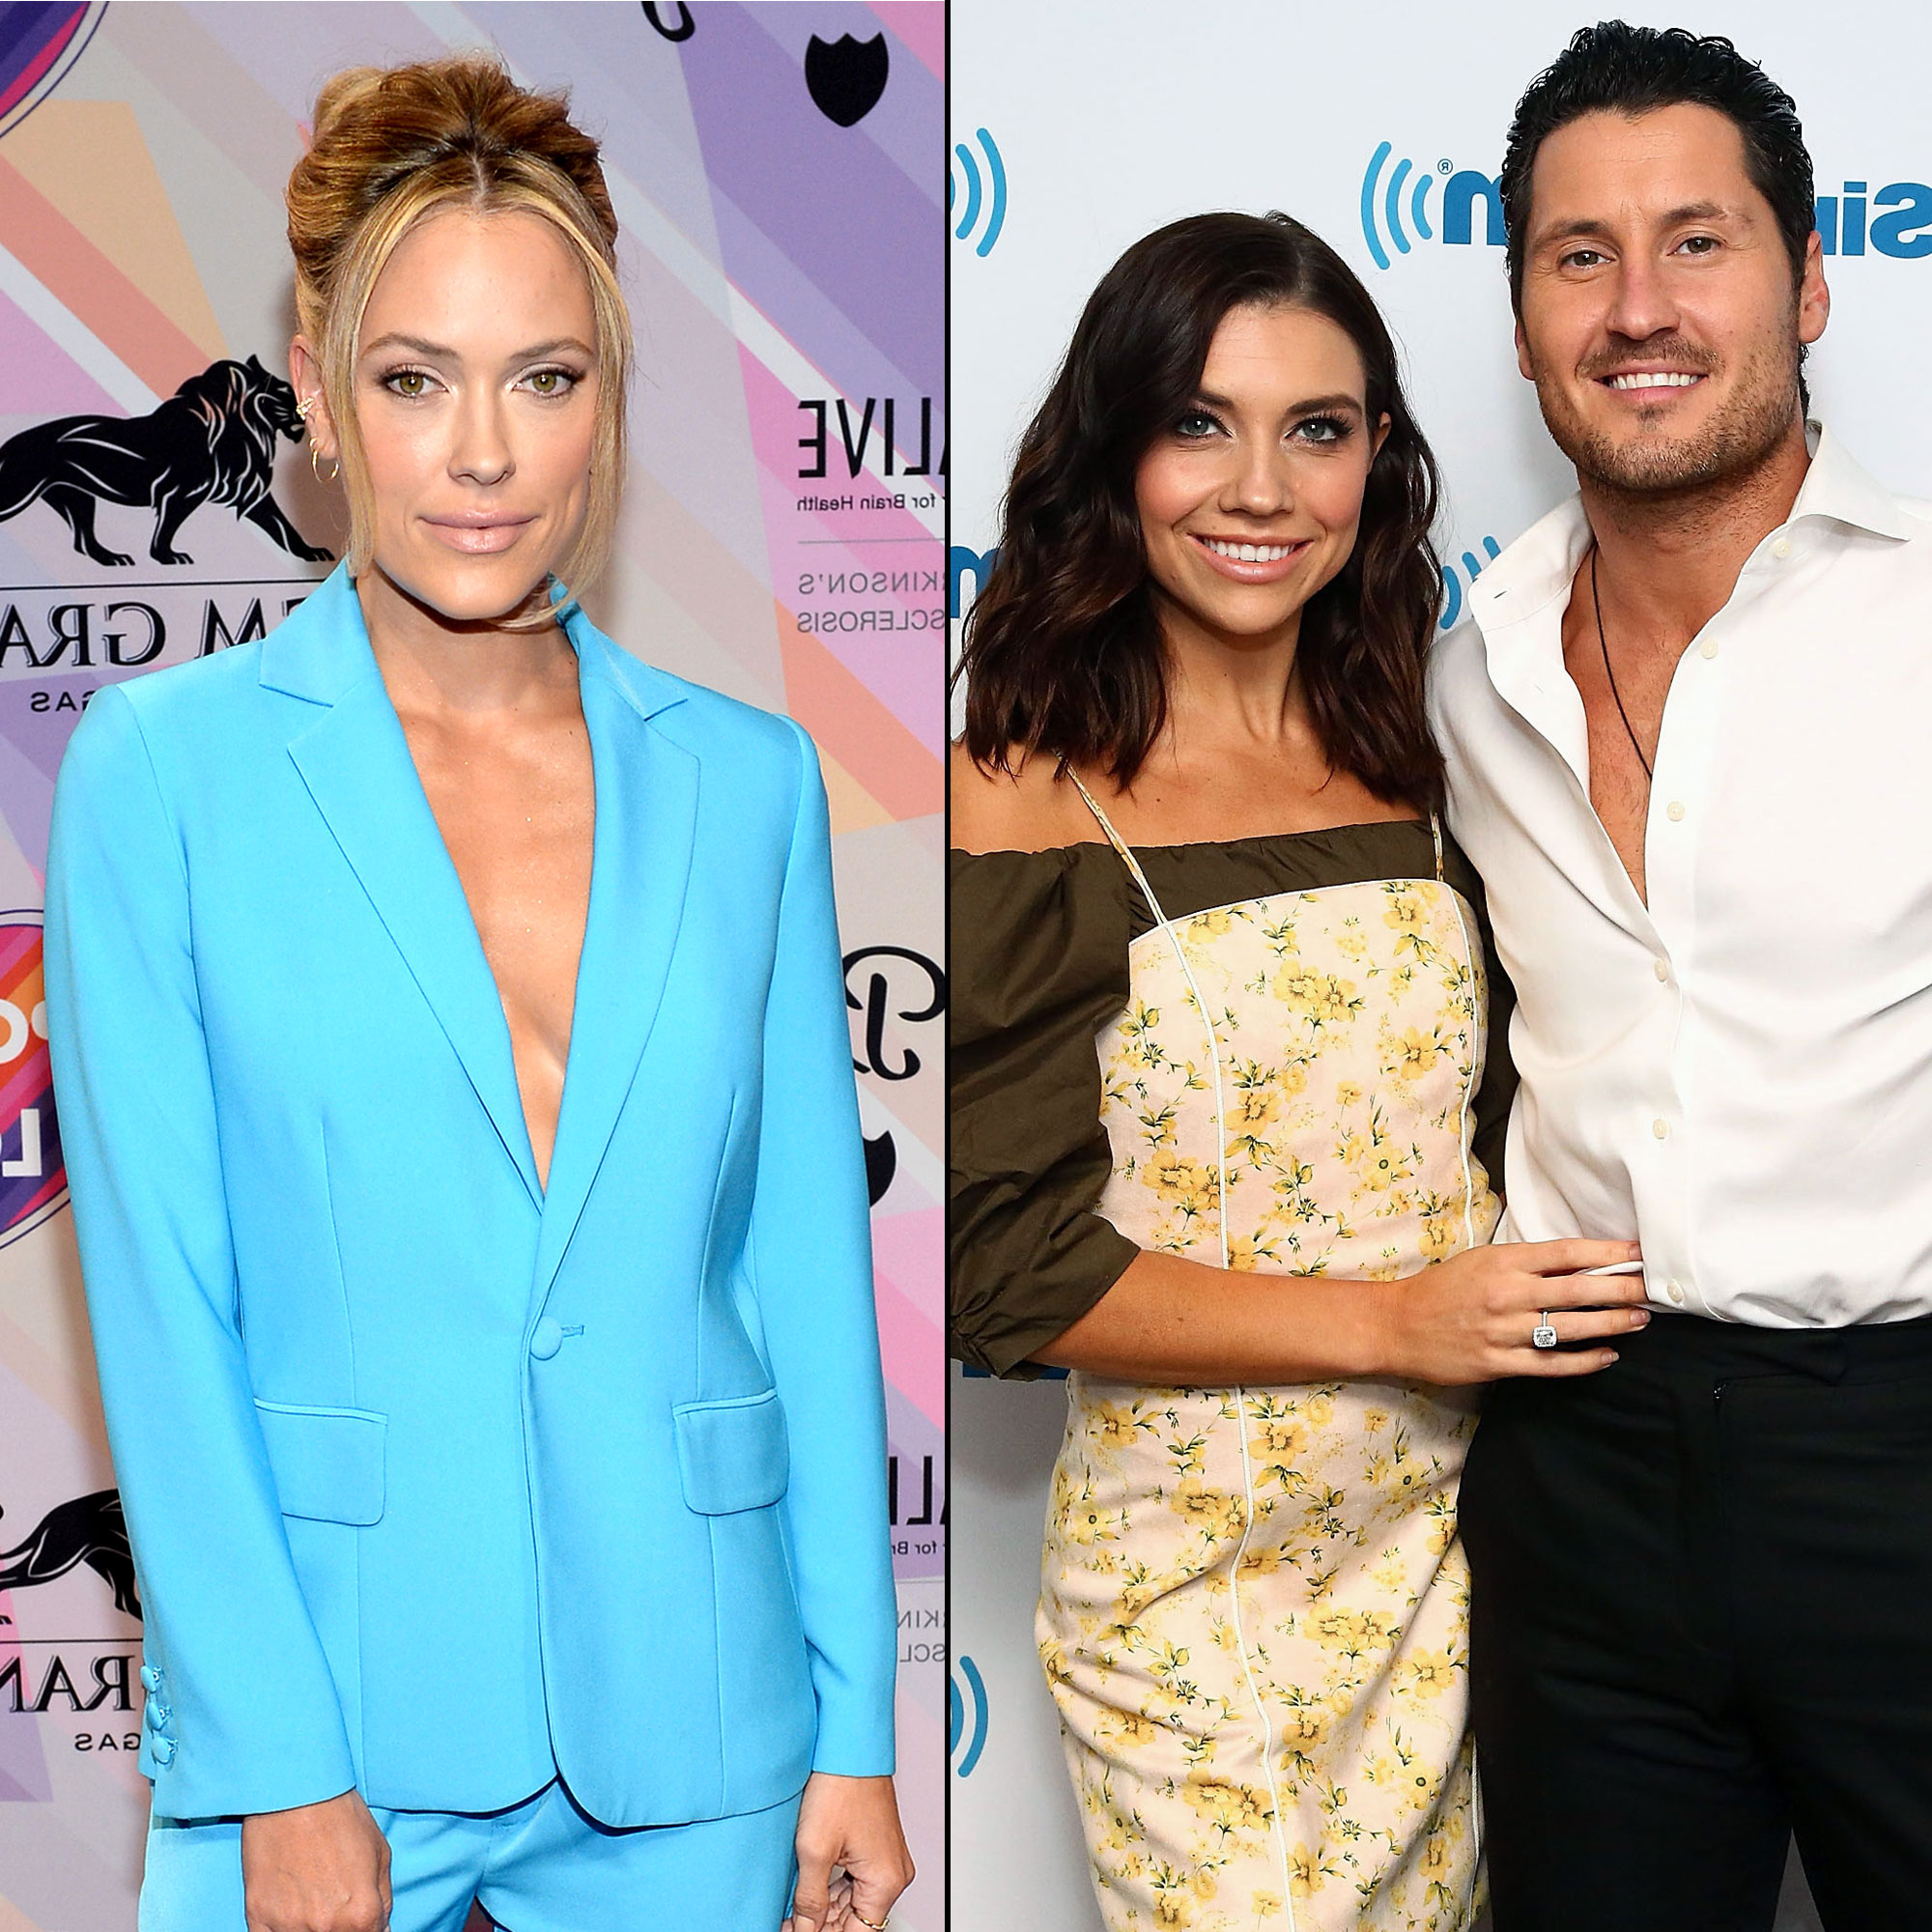 Peta Limbo at Val Jenna Wedding - Peta Murgatroyd, Jenna Johnson and Val Chmerkovskiy.